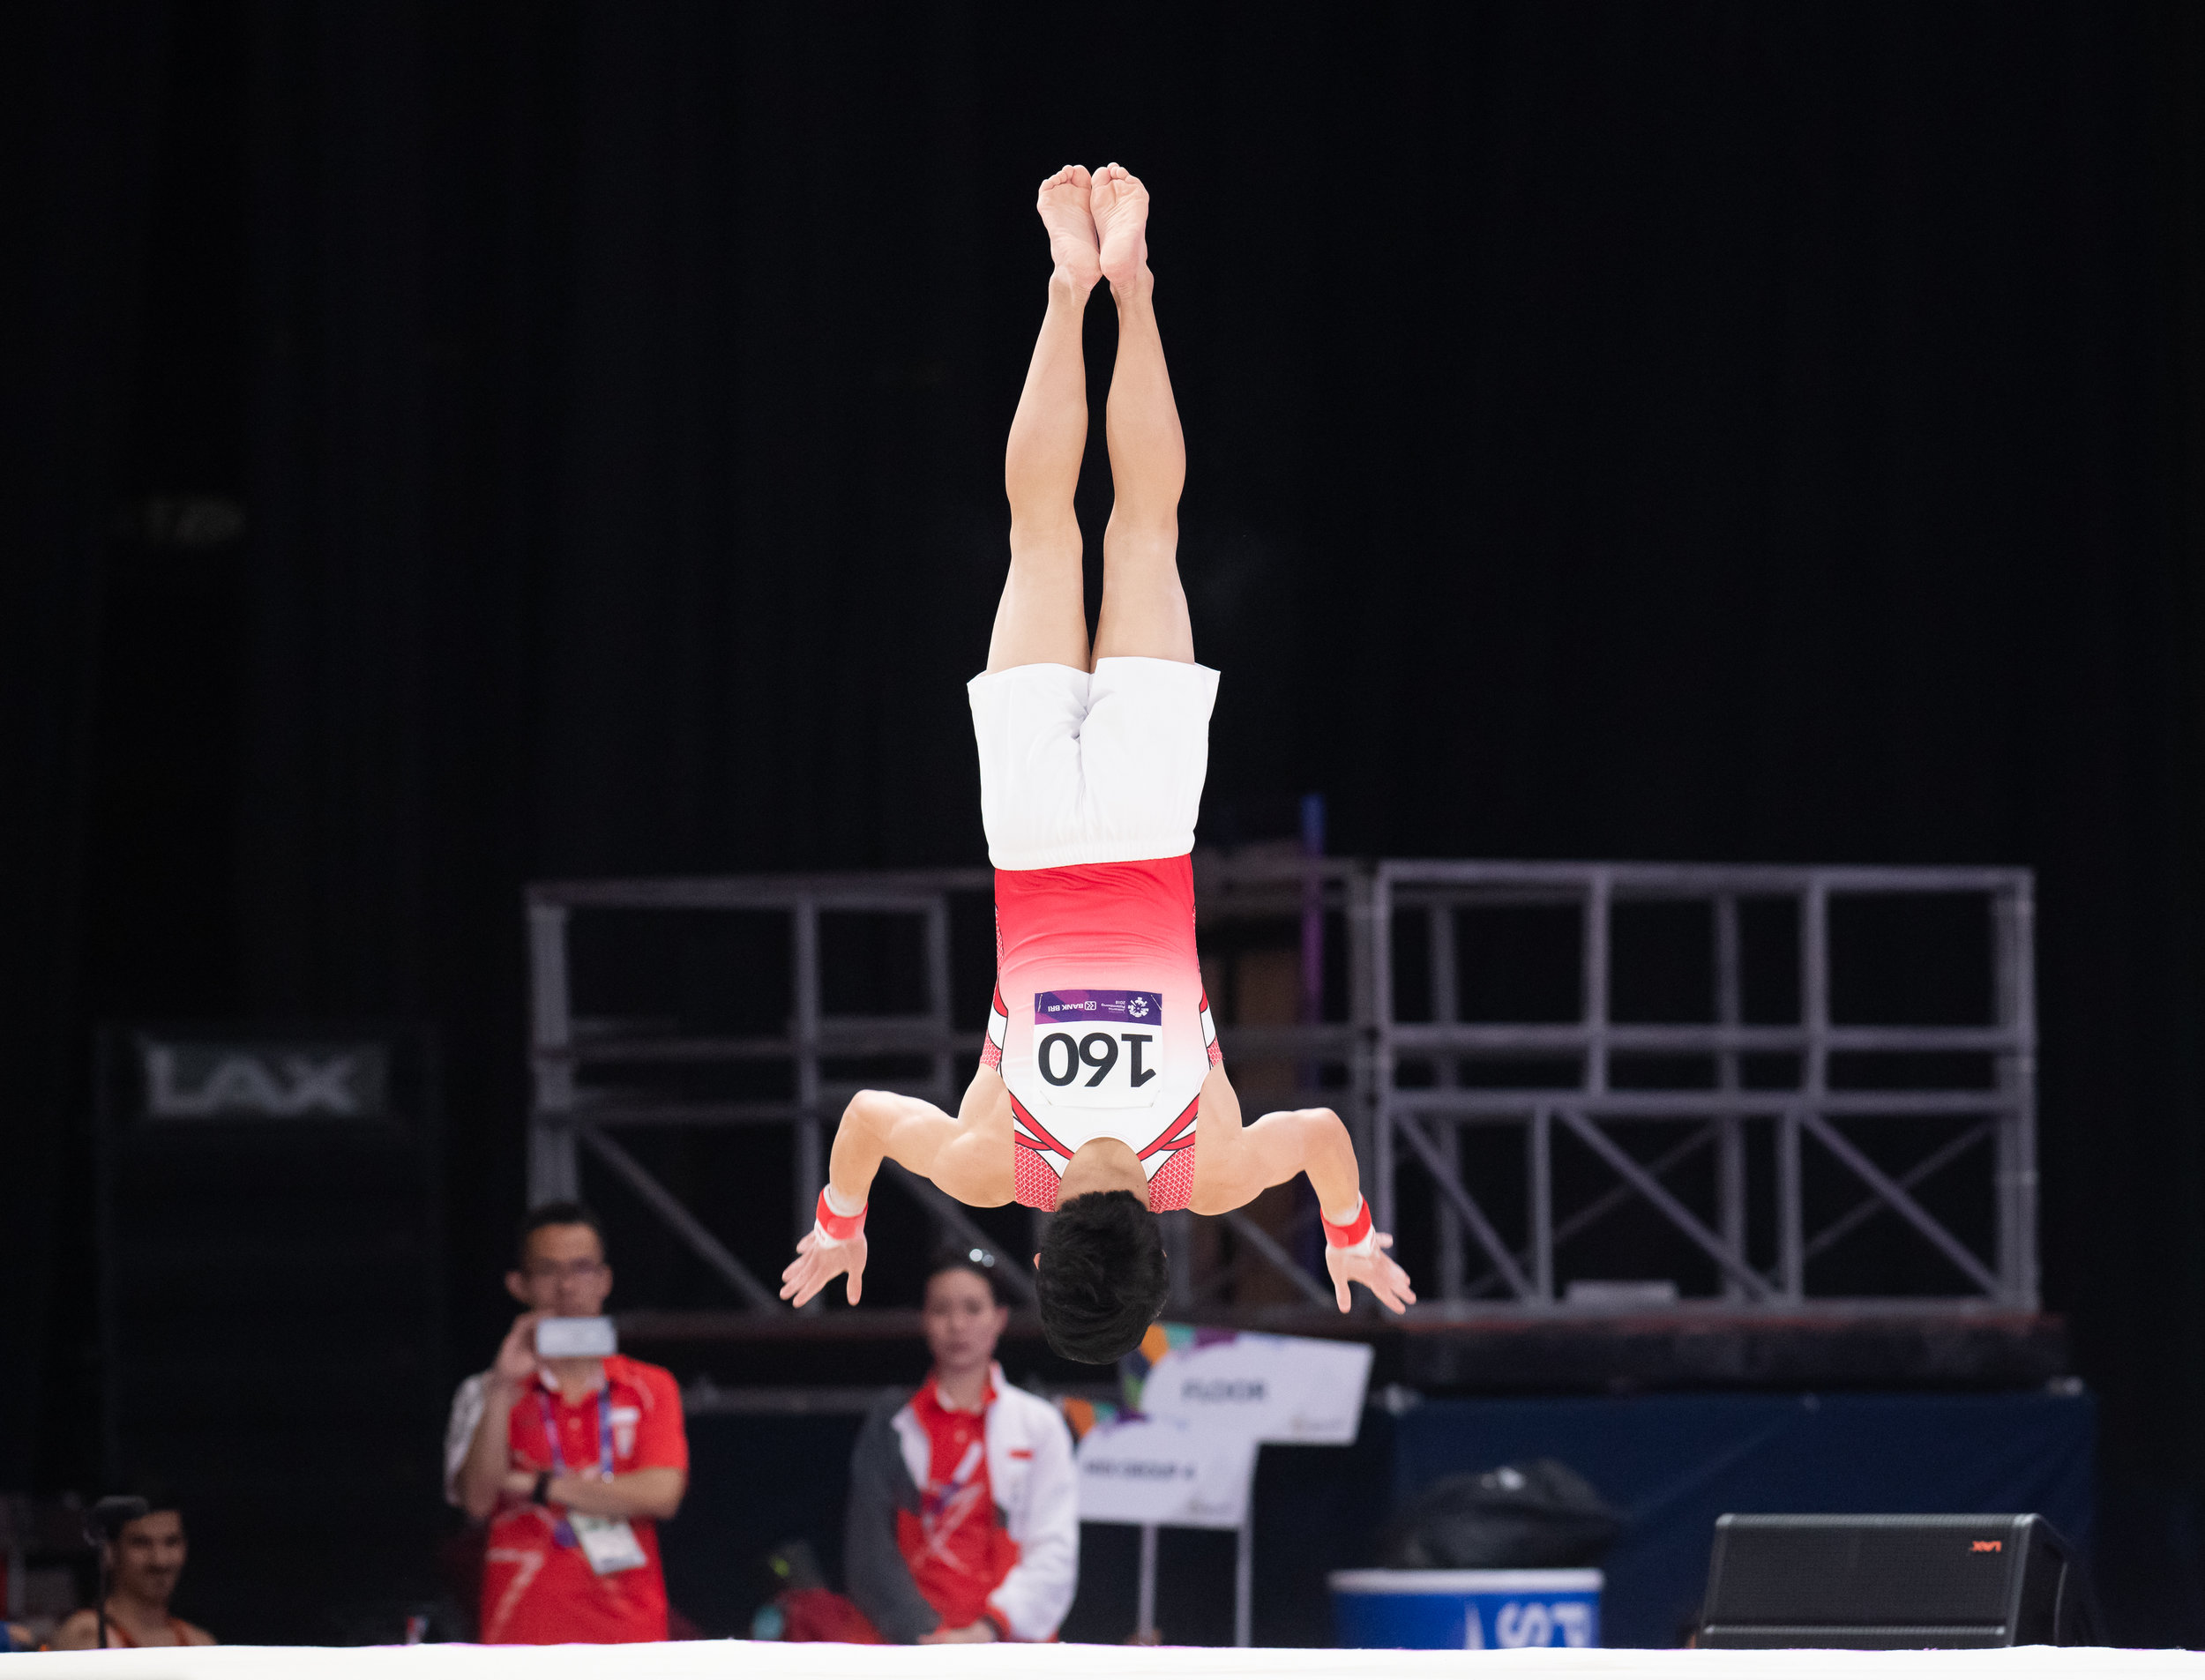 A Singaporean gymnast during the Men's Artistic Gymnastics Qualifiers of the Asian Games at the Jakarta Convention Centre.